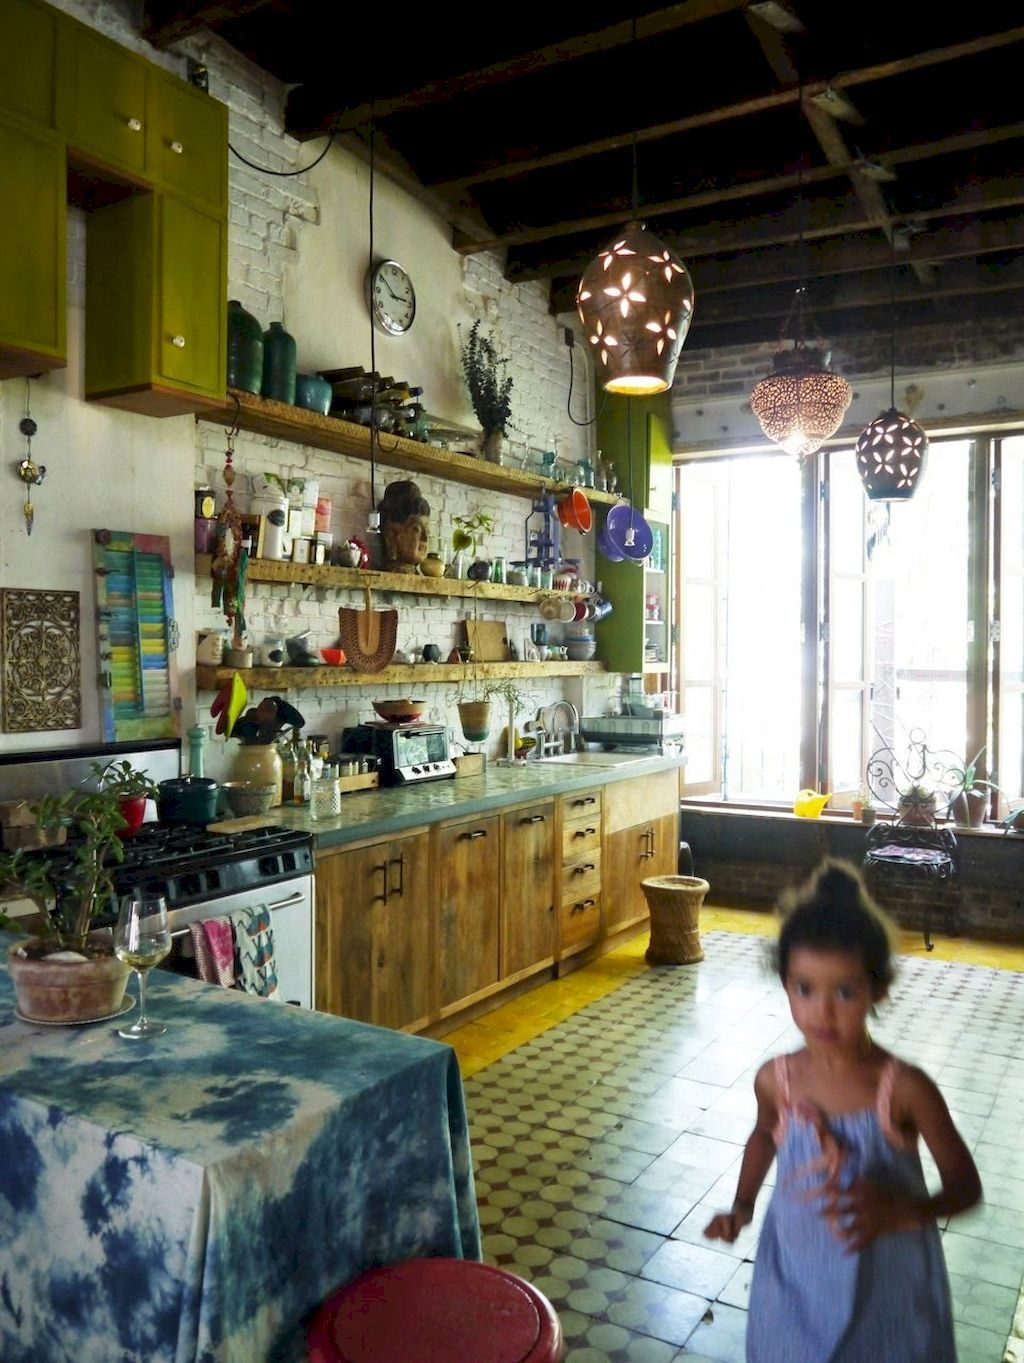 top 60 eclectic kitchen ideas 56 eclectic kitchen bohemian kitchen kitchen inspirations on boho chic kitchen id=16535